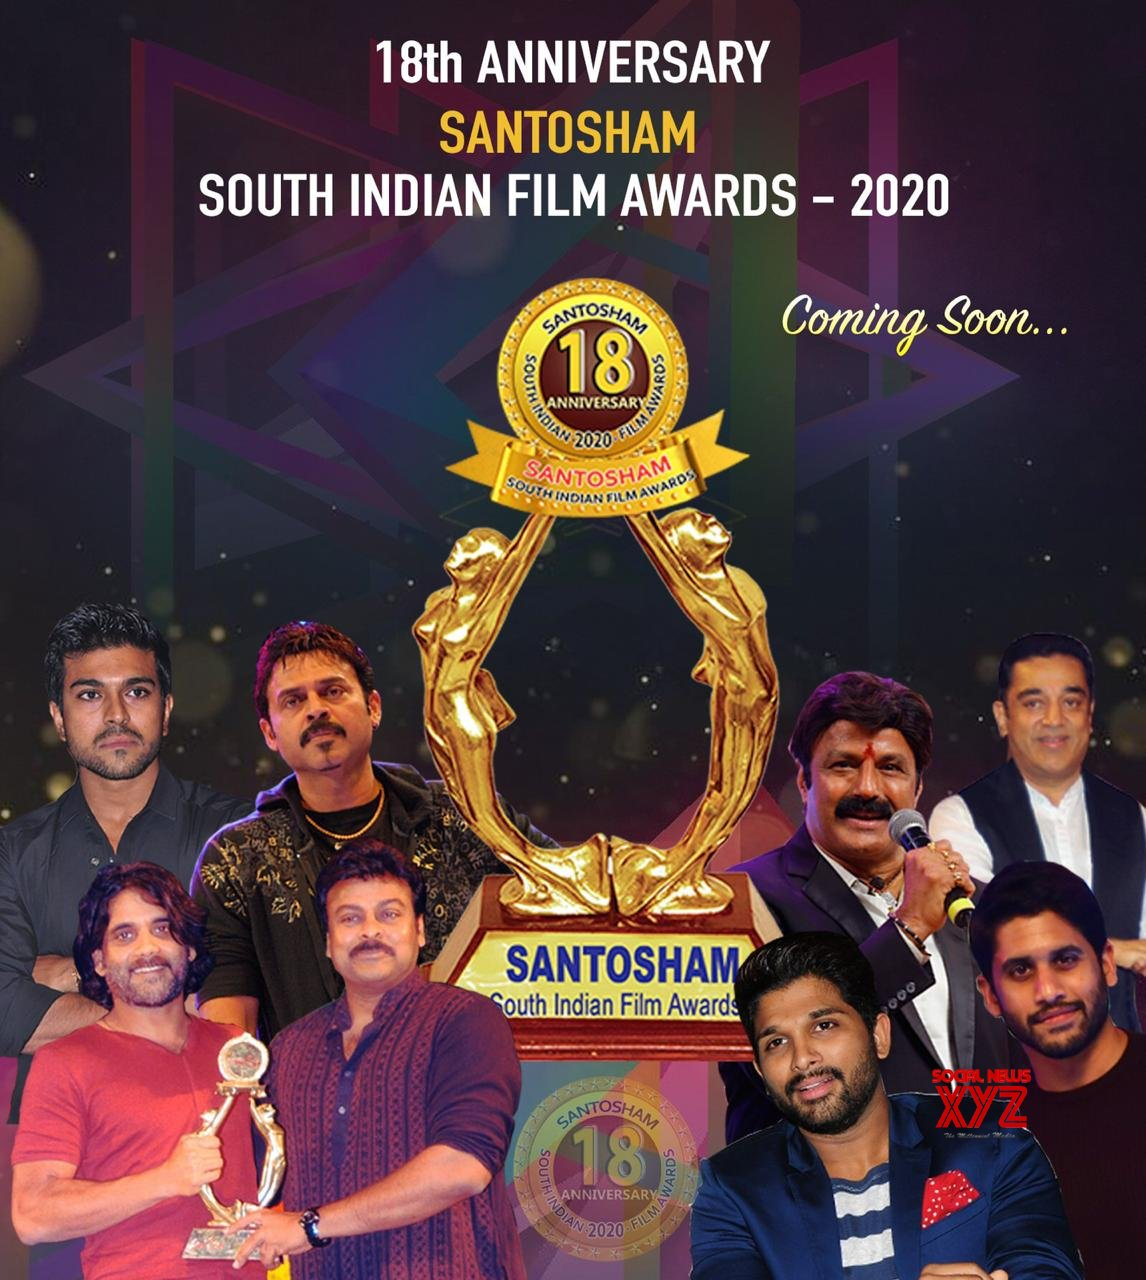 Santosham Film Awards 18th Anniversary Celebrations Will Held Soon